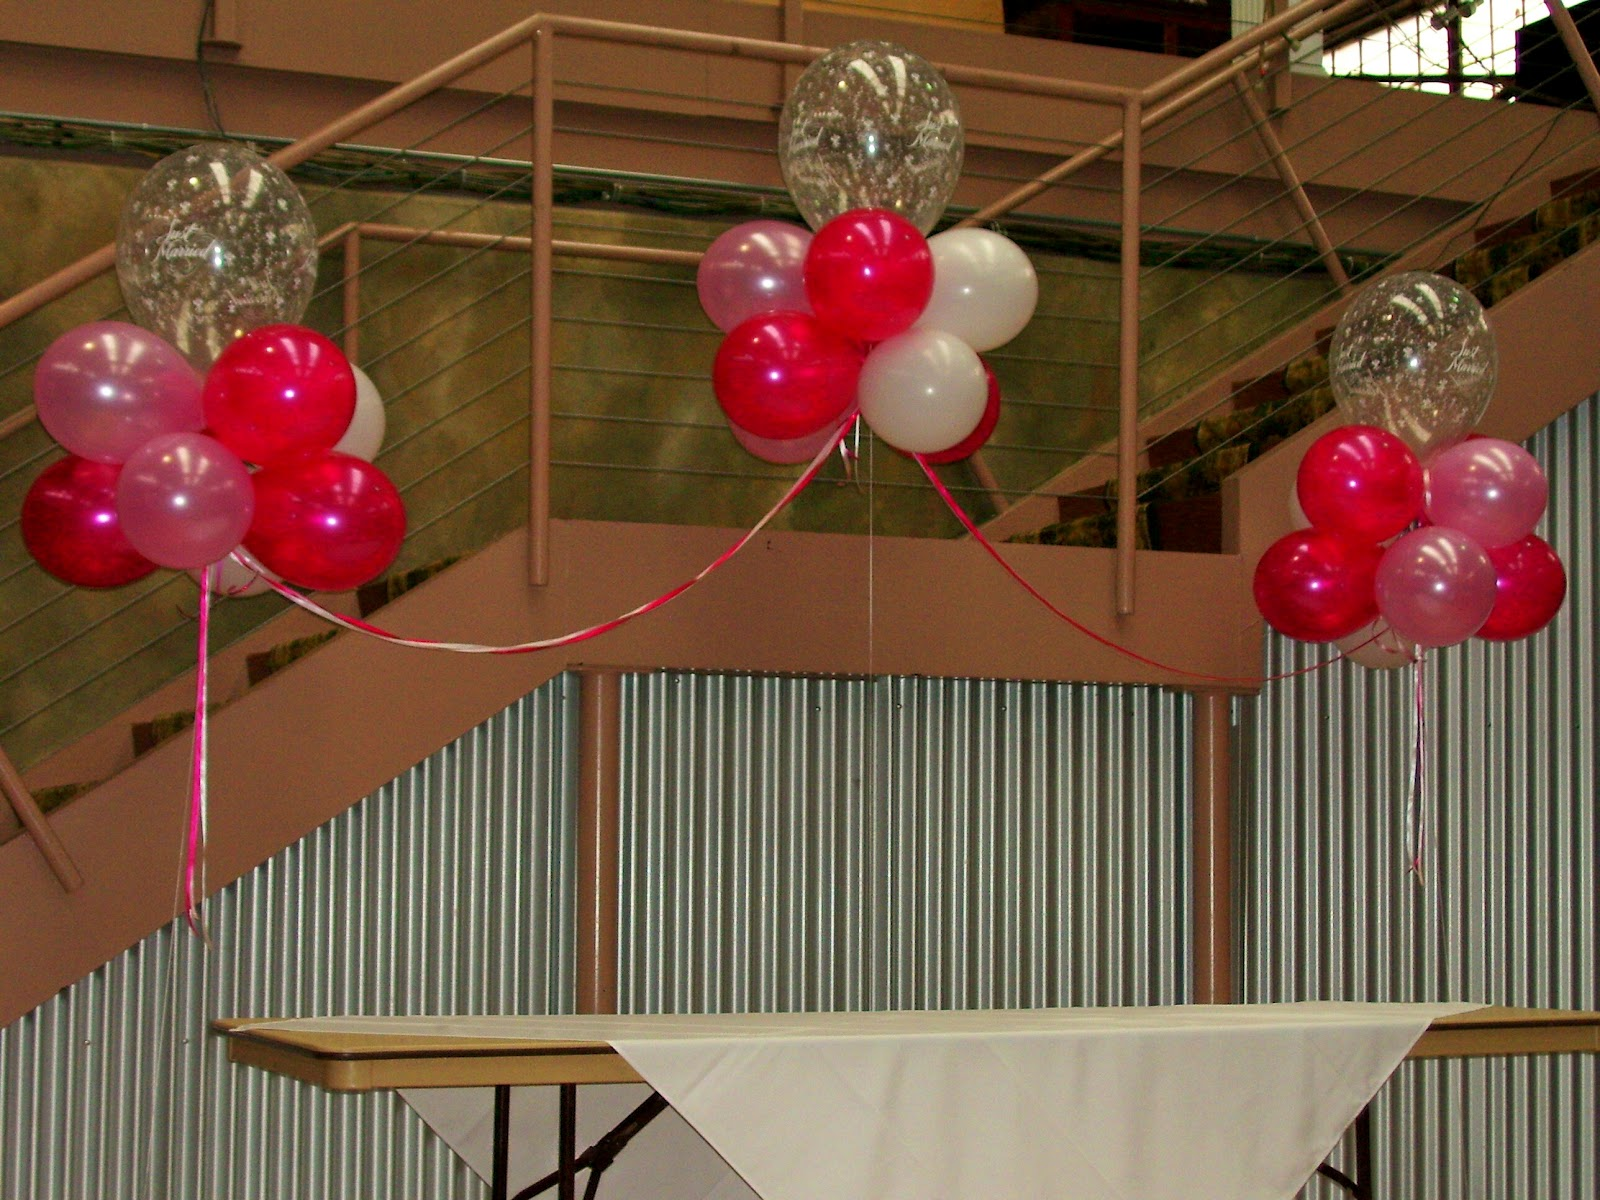 Diy balloon decorations ideas elitflat how to make do it yourself balloon arches columns more solutioingenieria Images